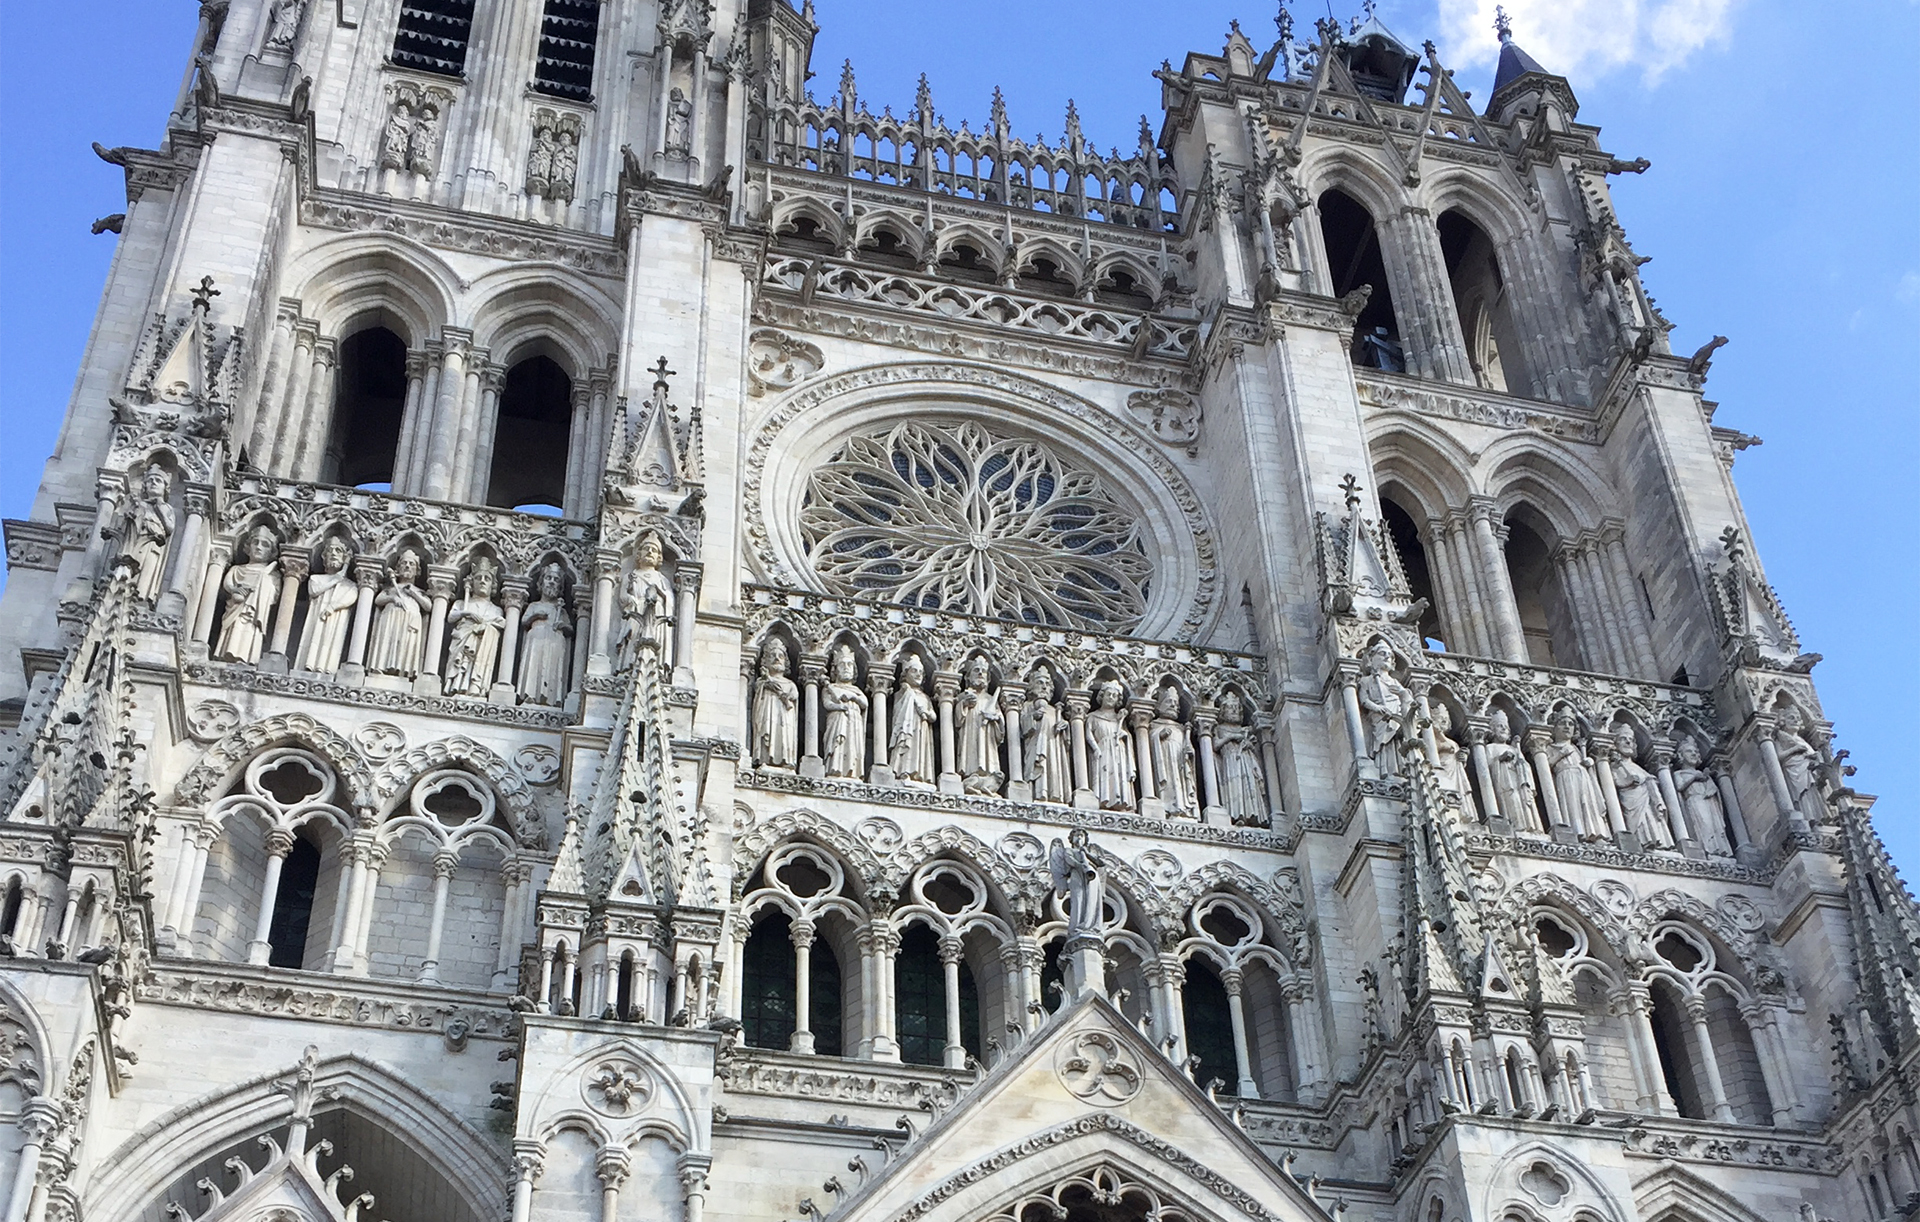 The cathedral in Amiens was built between 1220 and 1270 is a magnificient example of Gothic architecture. It also goes by the names Notre-Dame d'Amiens or the Cathedral of Notre-Dame of Amiens. Amiens is located 120 kms north of Paris